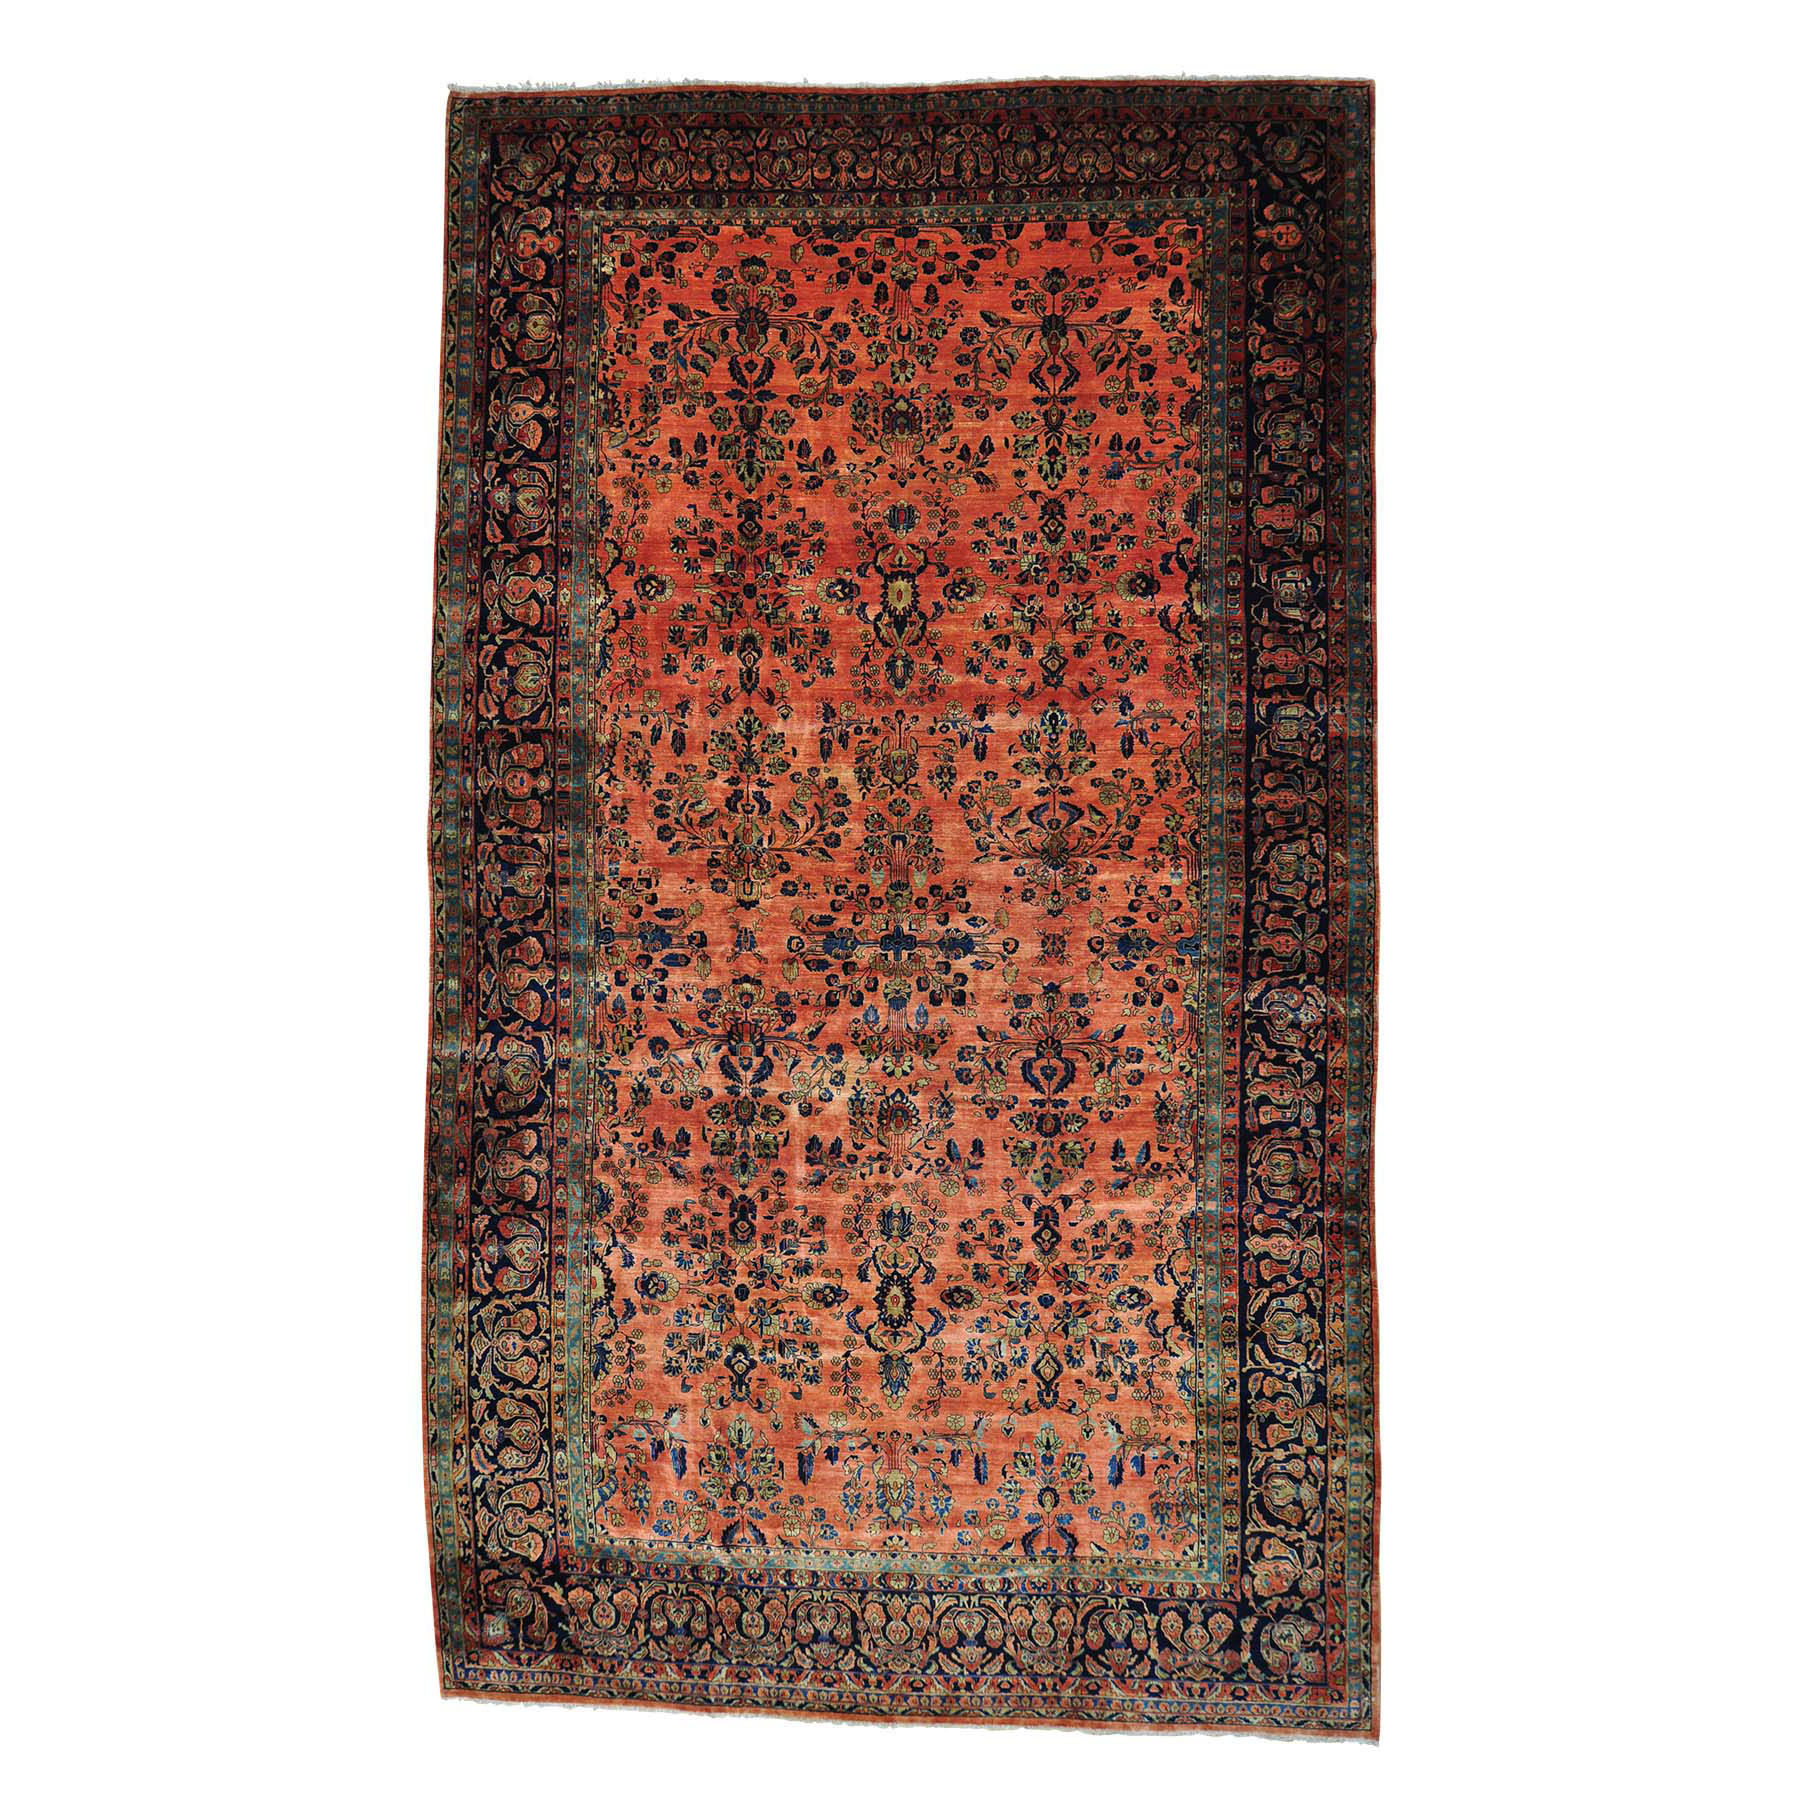 Antique Collection Hand Knotted Orange Rug No: 158774